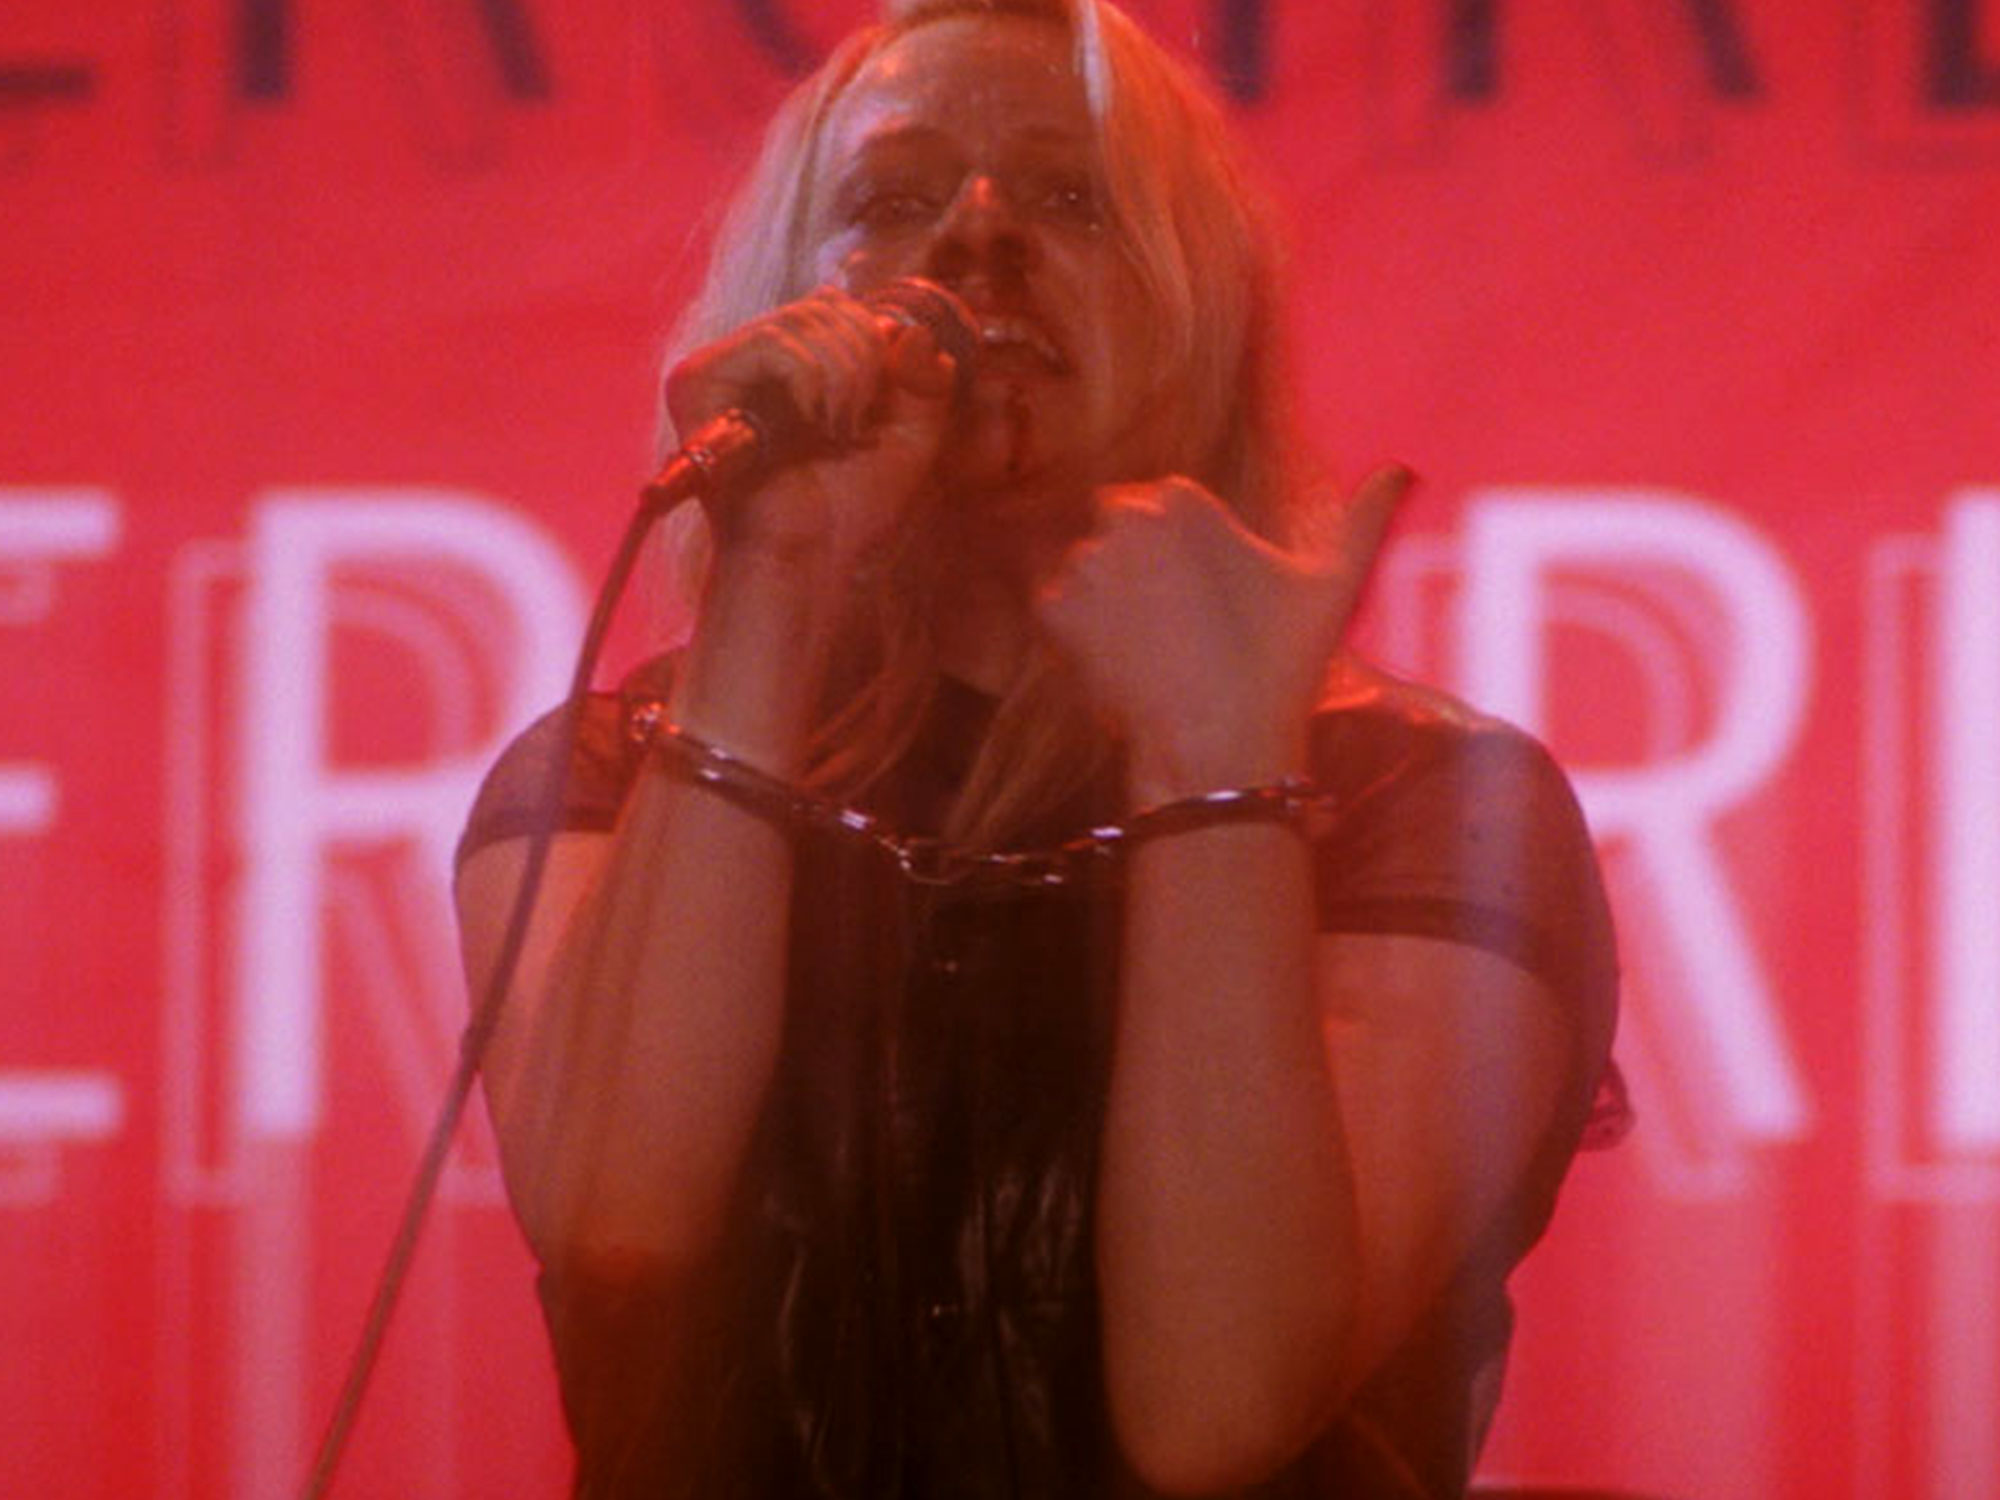 Crank up the volume on the trailer for punk epic Her Smell